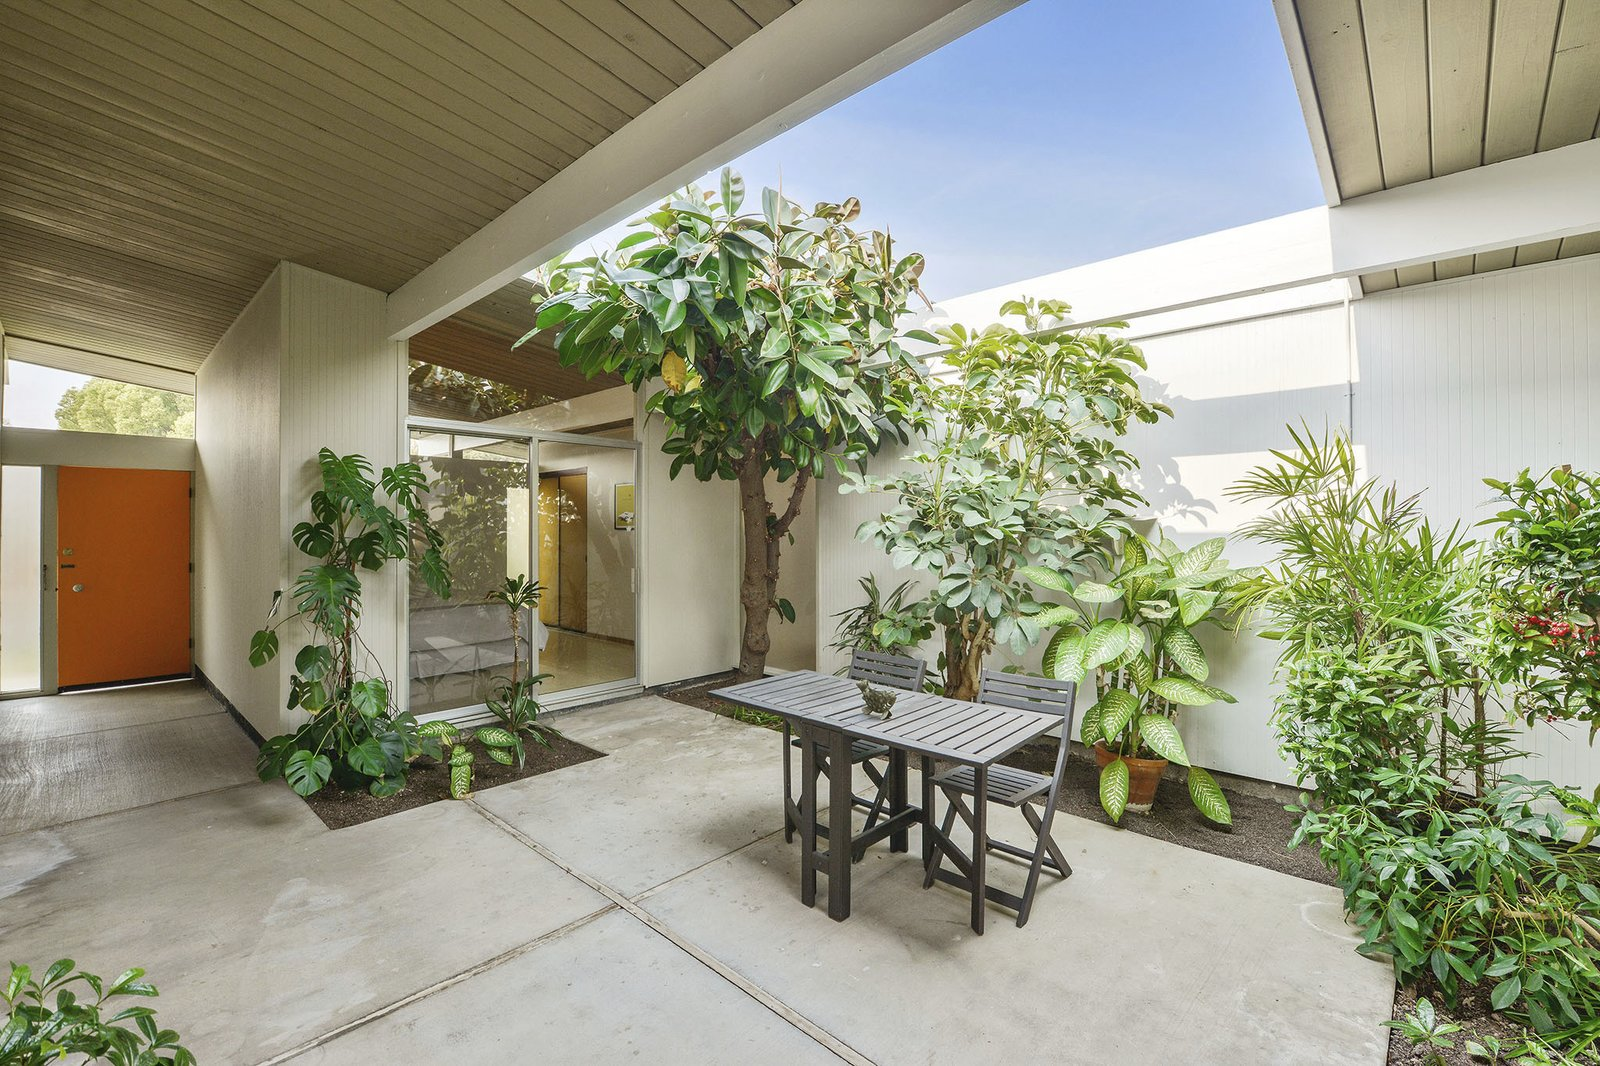 A Bay Area Eichler Home With a Greenery-Filled Atrium Lists for $850K